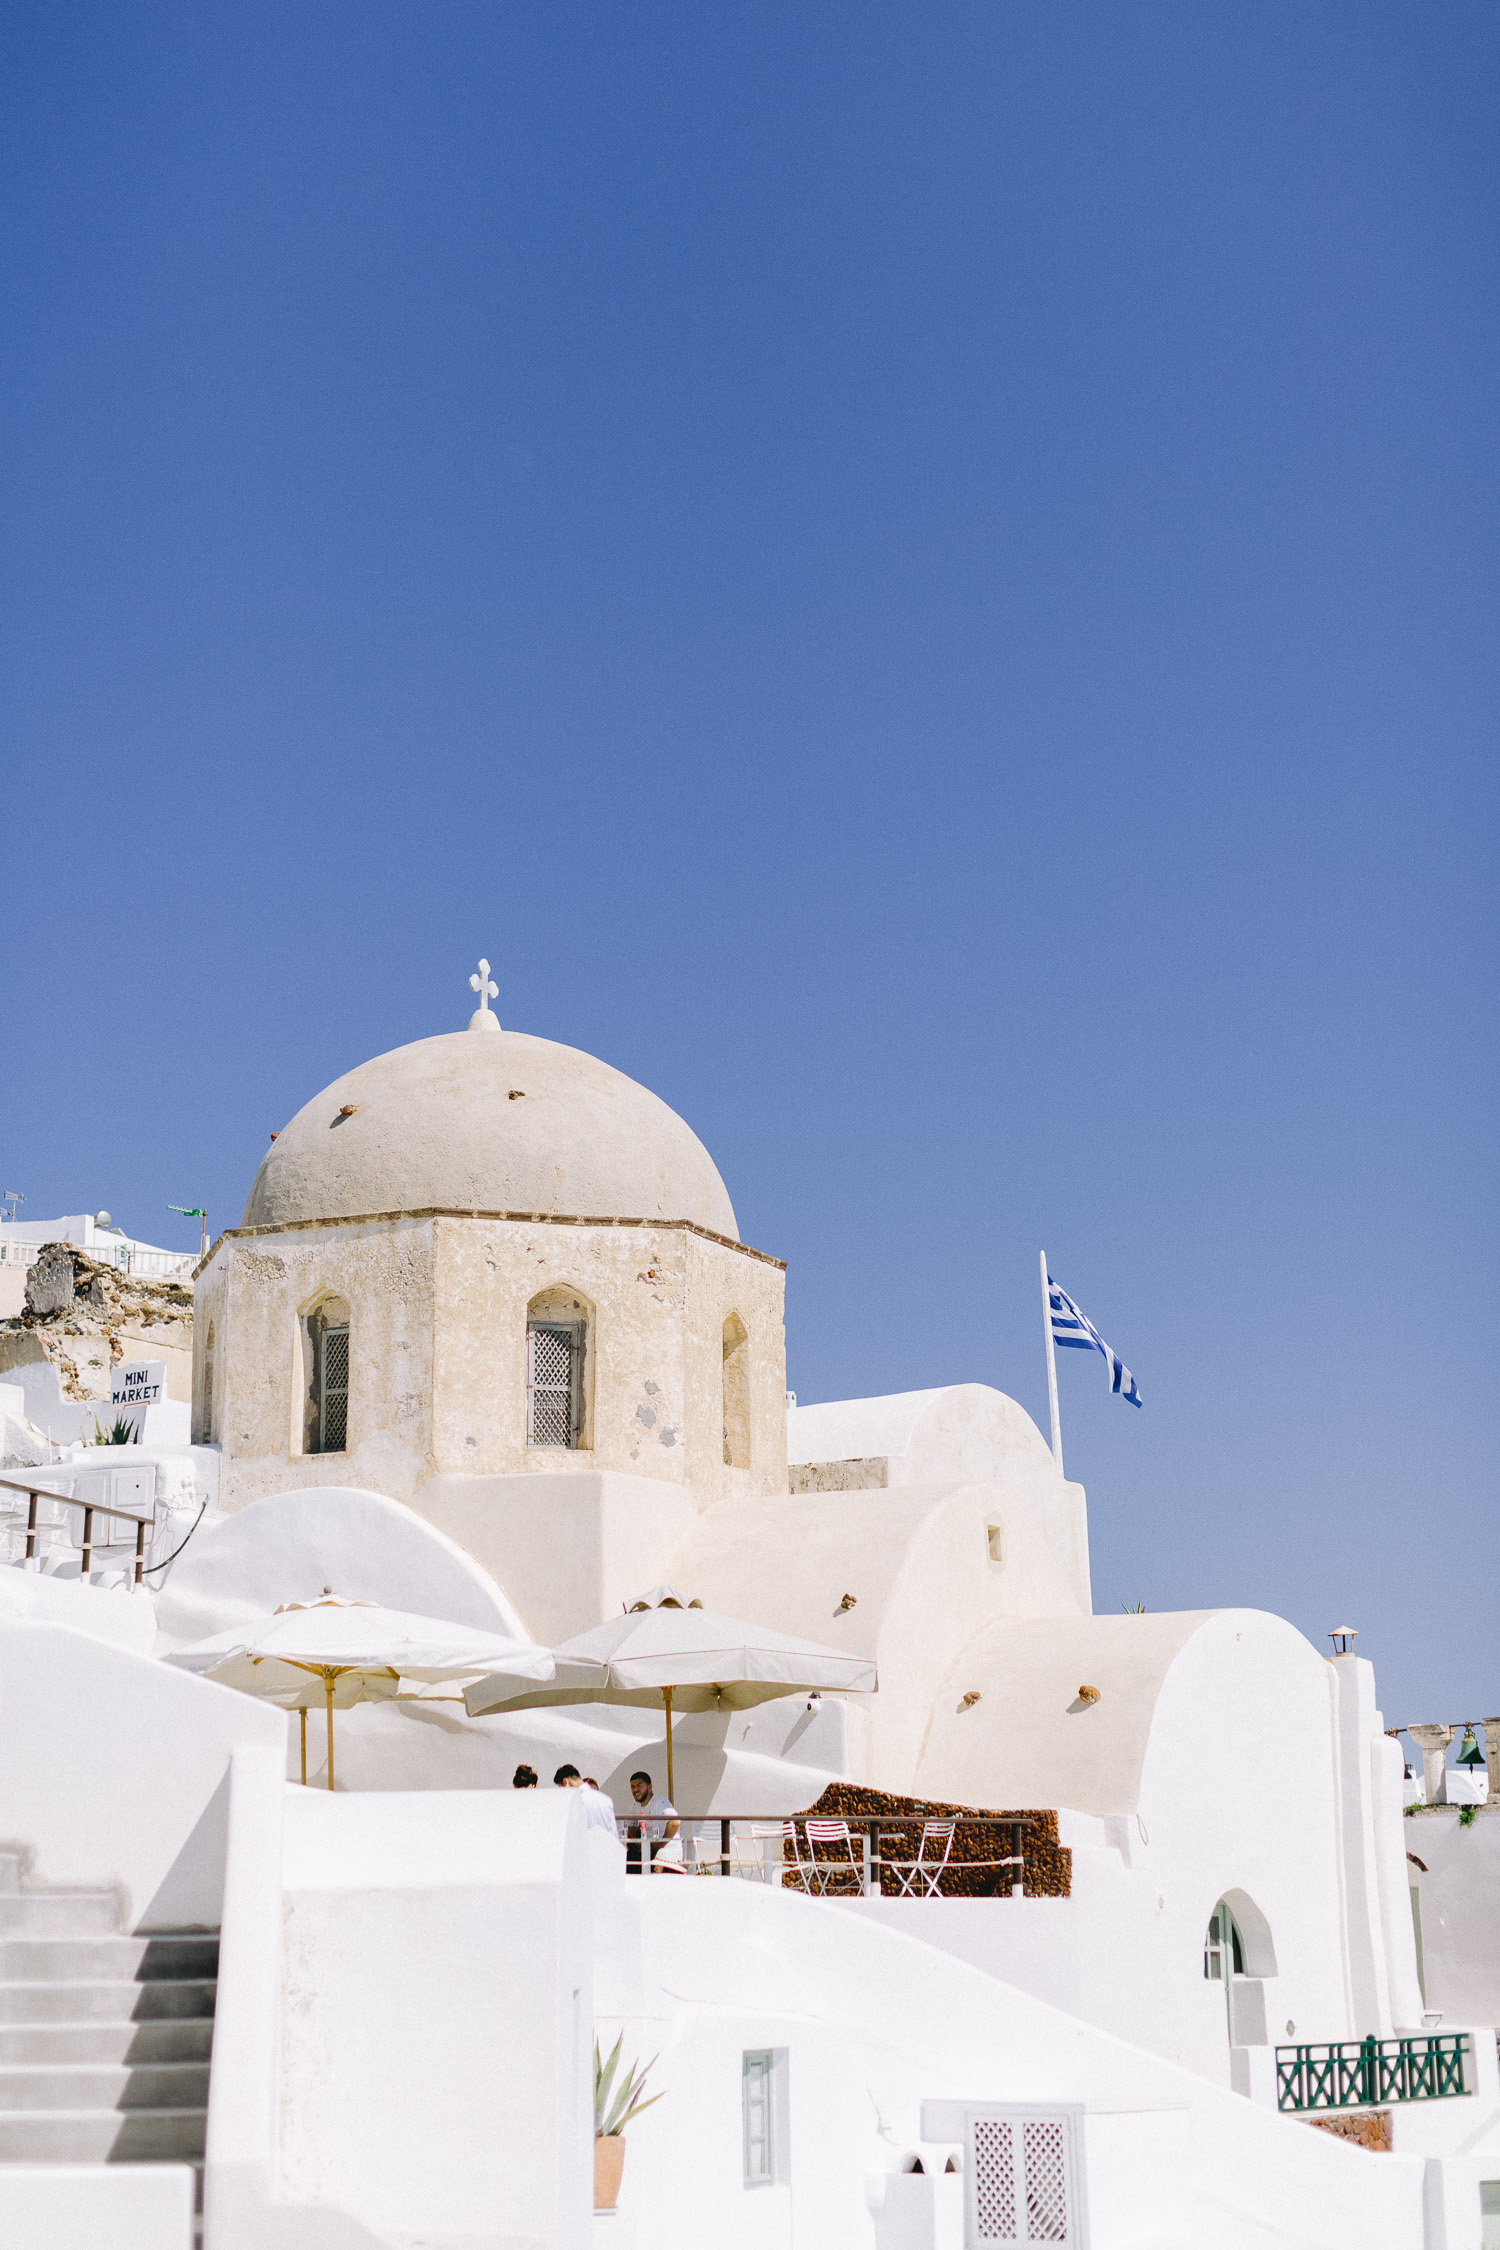 Lovely wedding photography location at the old town of Santorini island